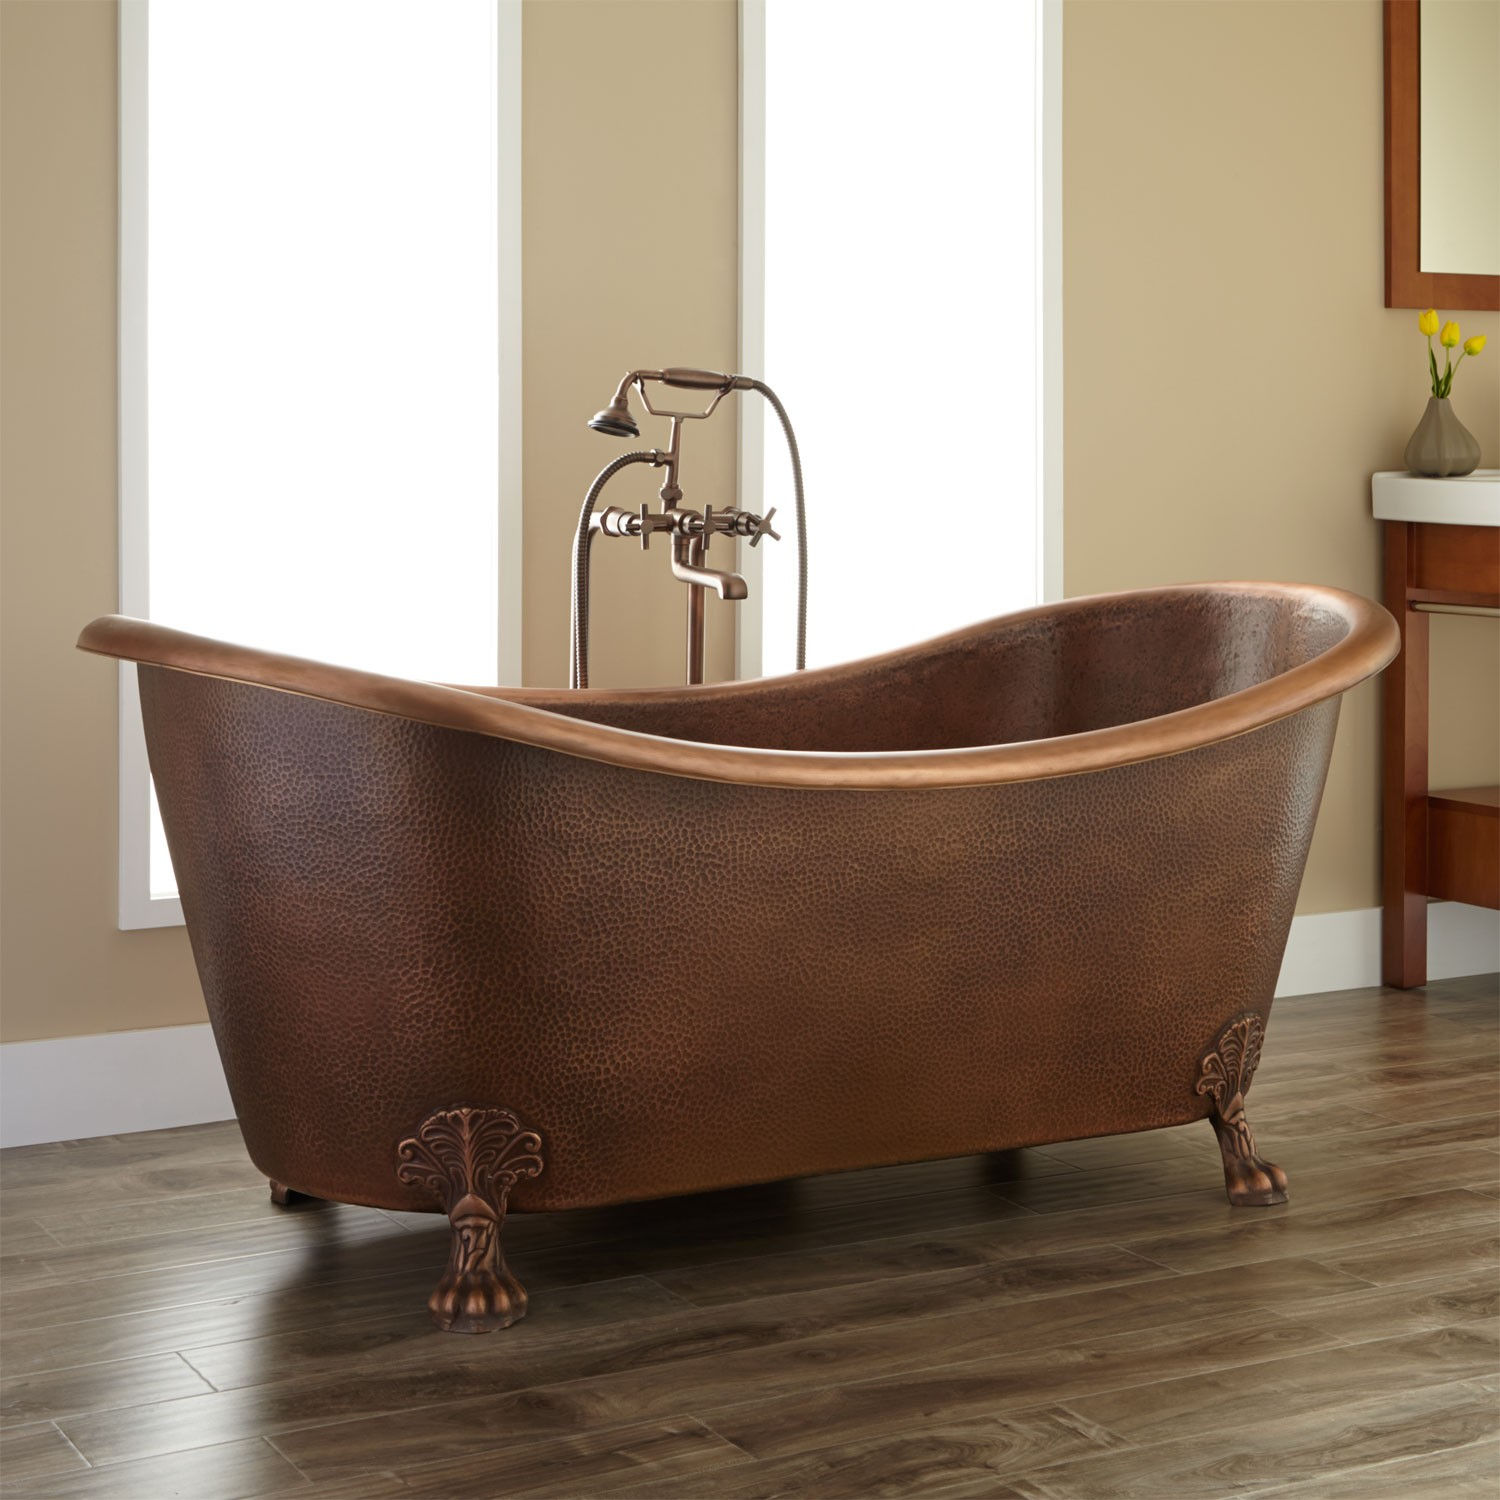 Smallest Bathtub Size-Clawfoot bathtub